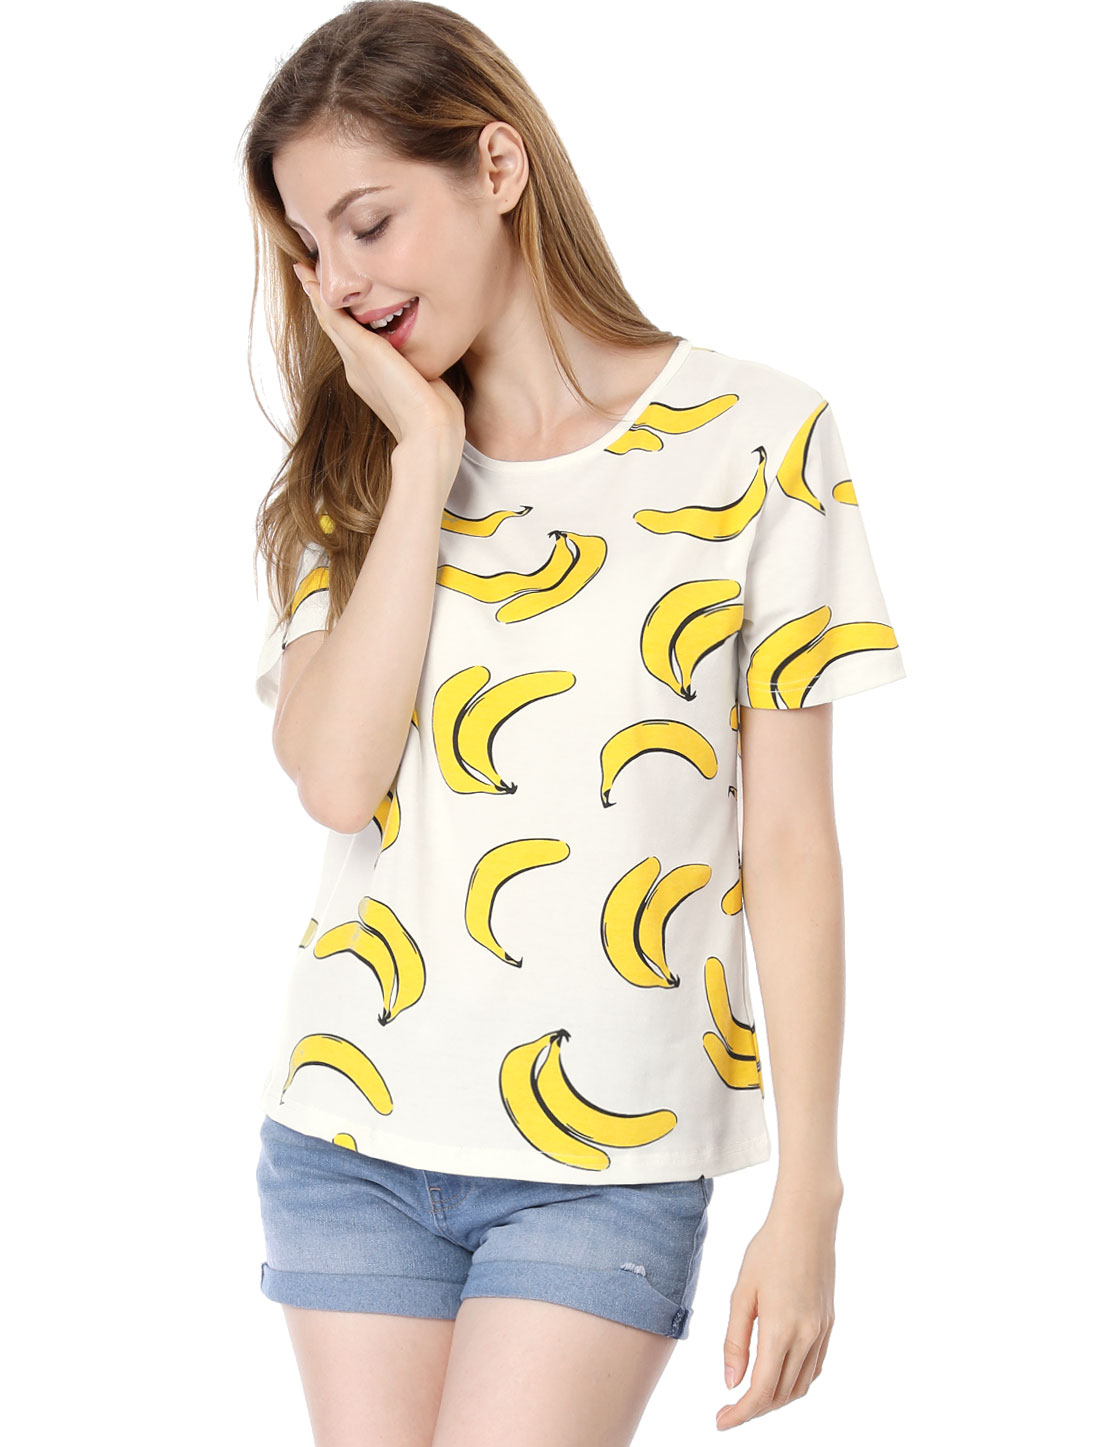 Women Short Sleeves Bananas Print T-Shirts White XL